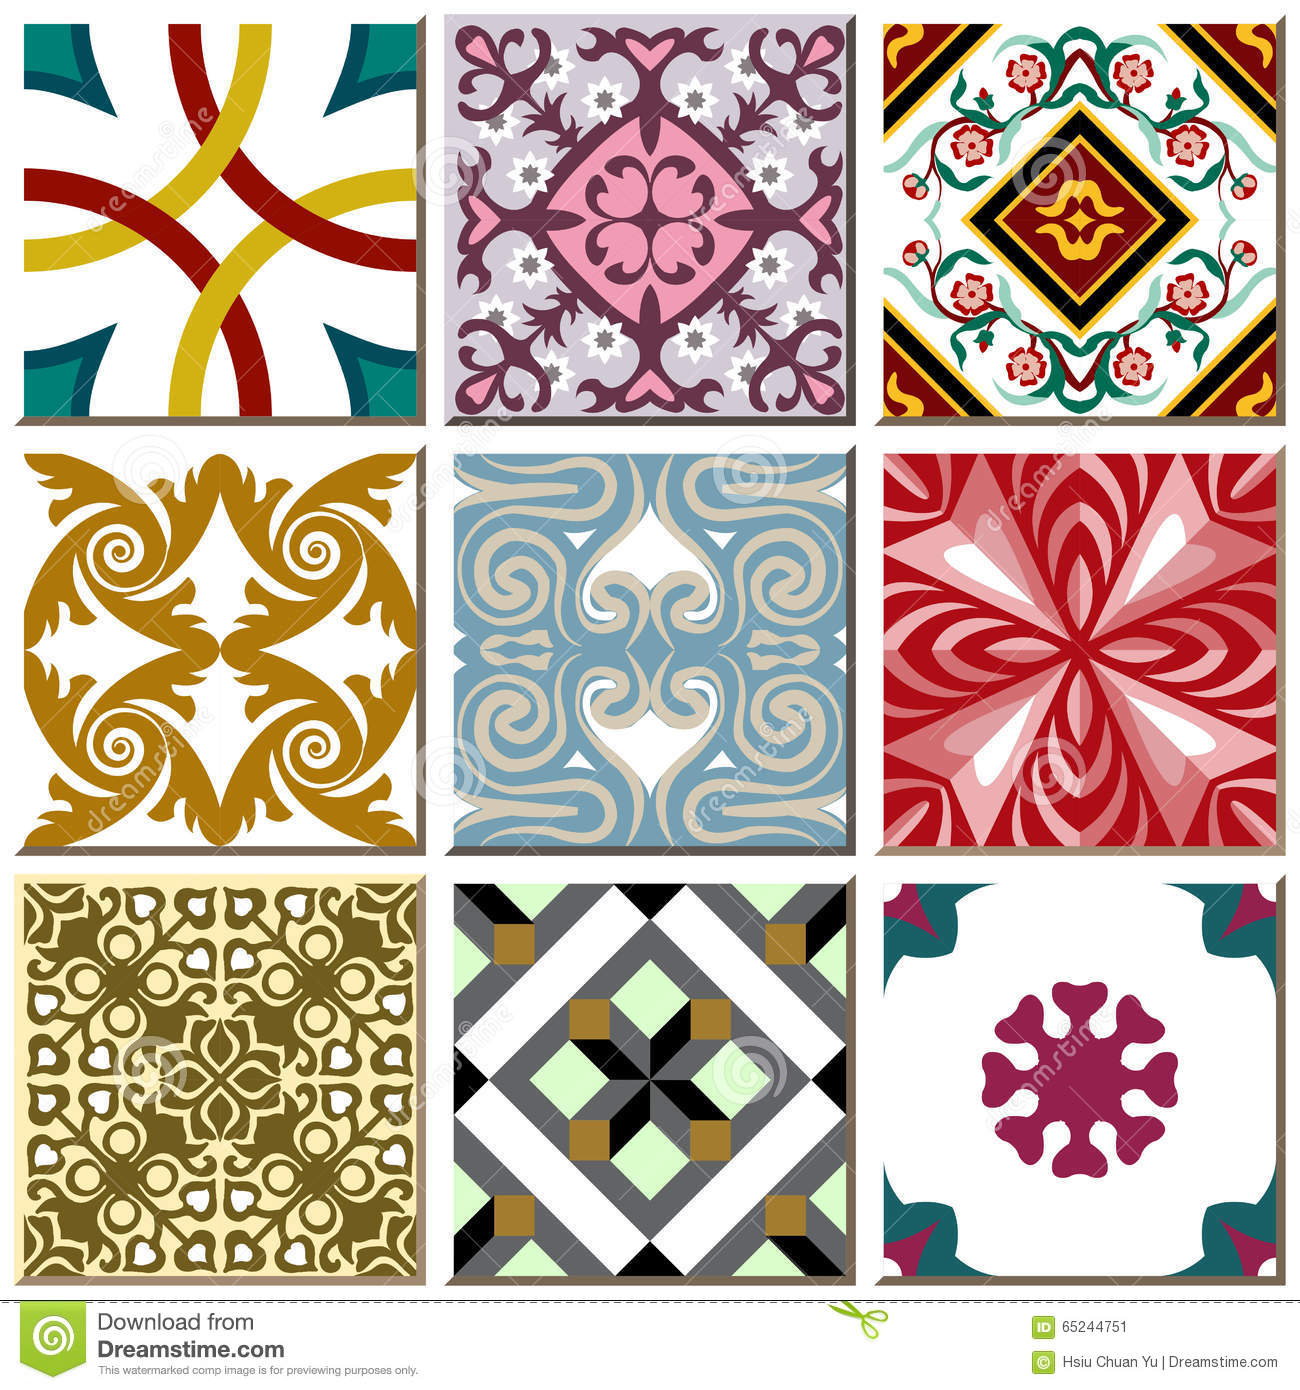 Vintage retro ceramic tile pattern set collection 006 stock vector vintage retro ceramic tile pattern set collection 006 doublecrazyfo Image collections